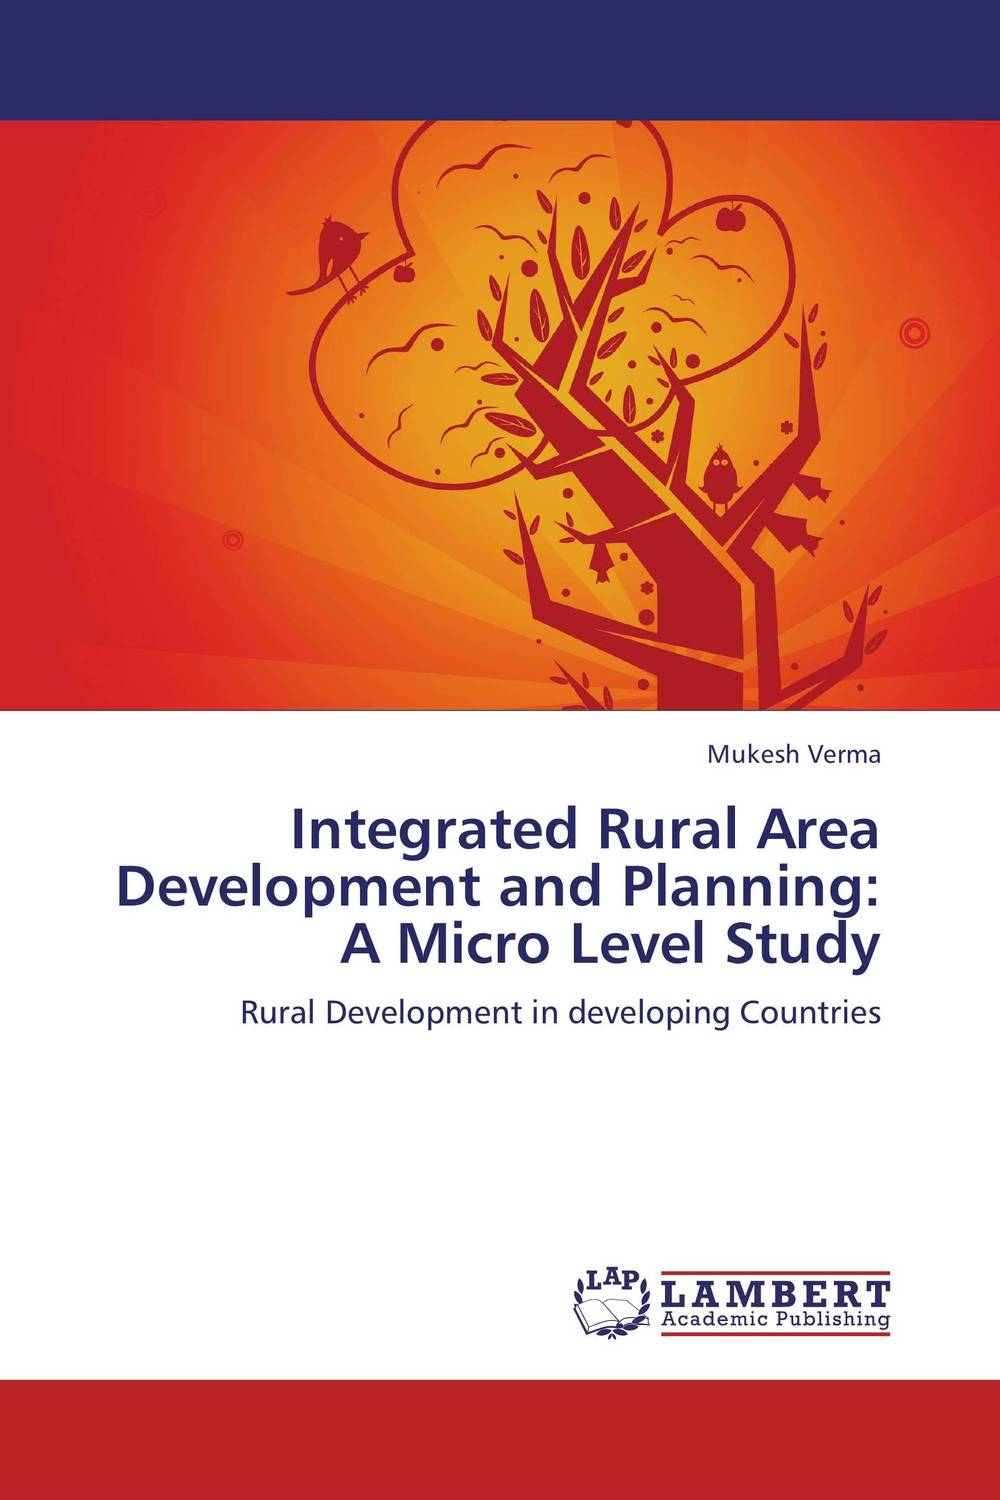 Integrated Rural Area Development and Planning: A Micro Level Study optimal and efficient motion planning of redundant robot manipulators